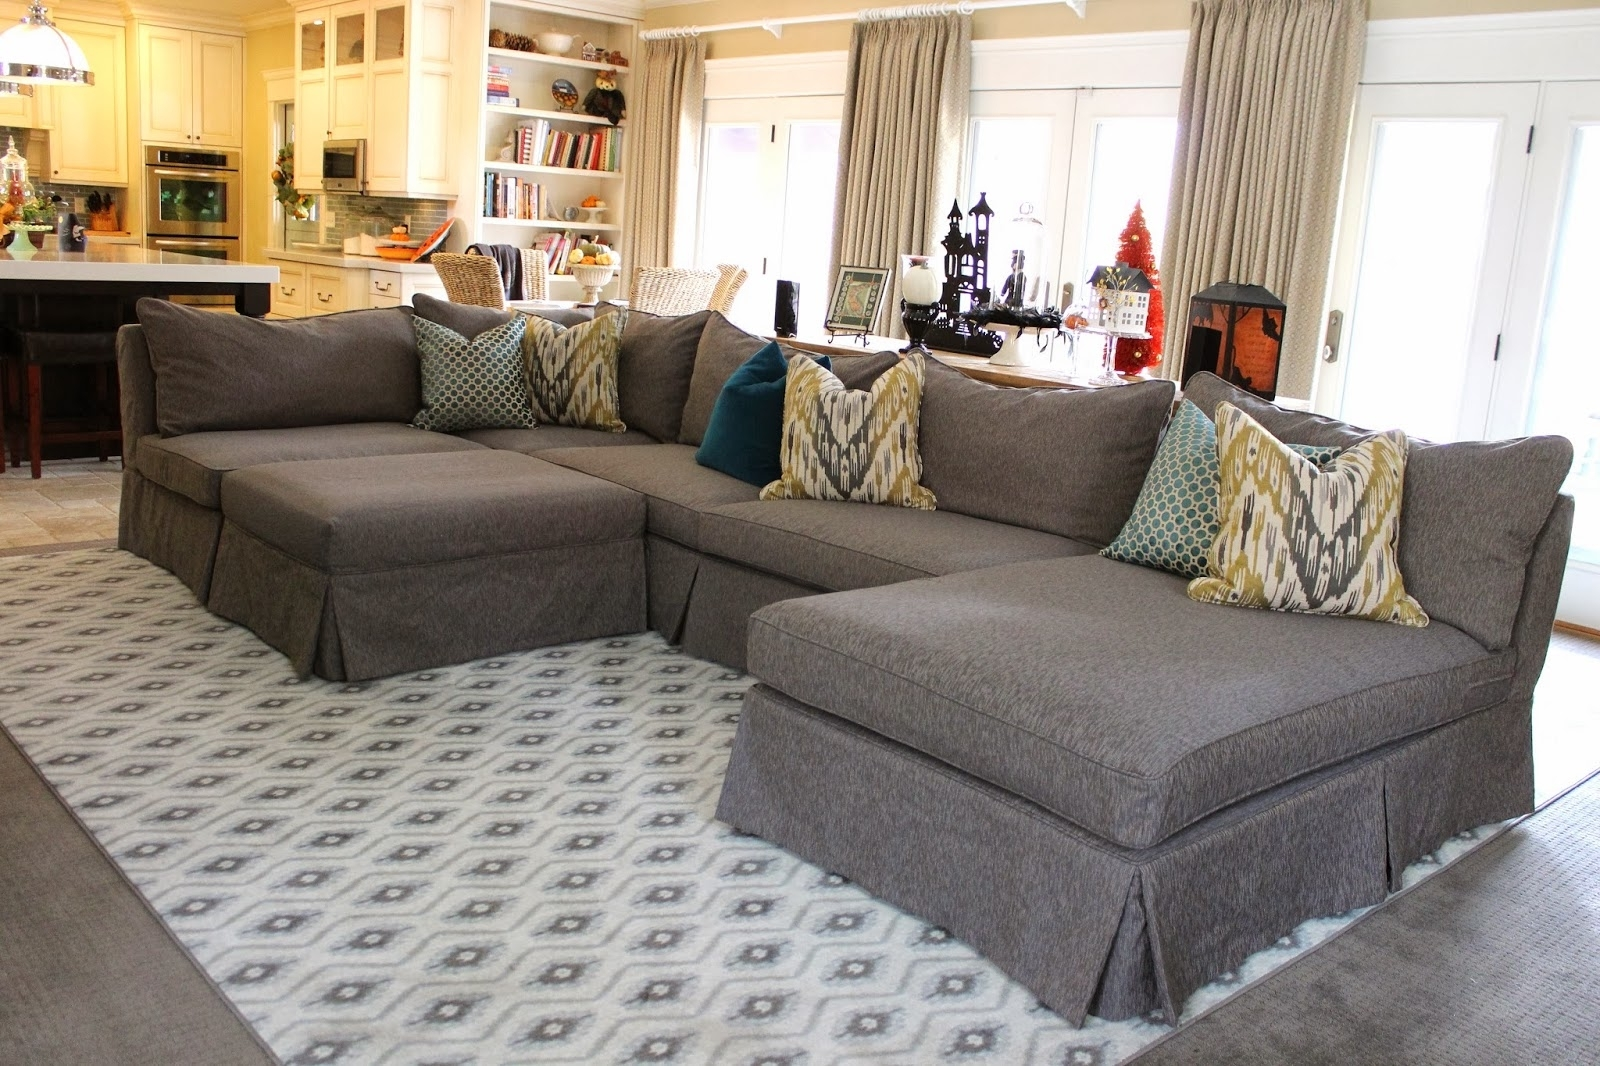 Grey Sectional From Slipcovered Sectional Sofa Pottery Barn For Popular Slipcovered Sofas With Chaise (View 6 of 15)